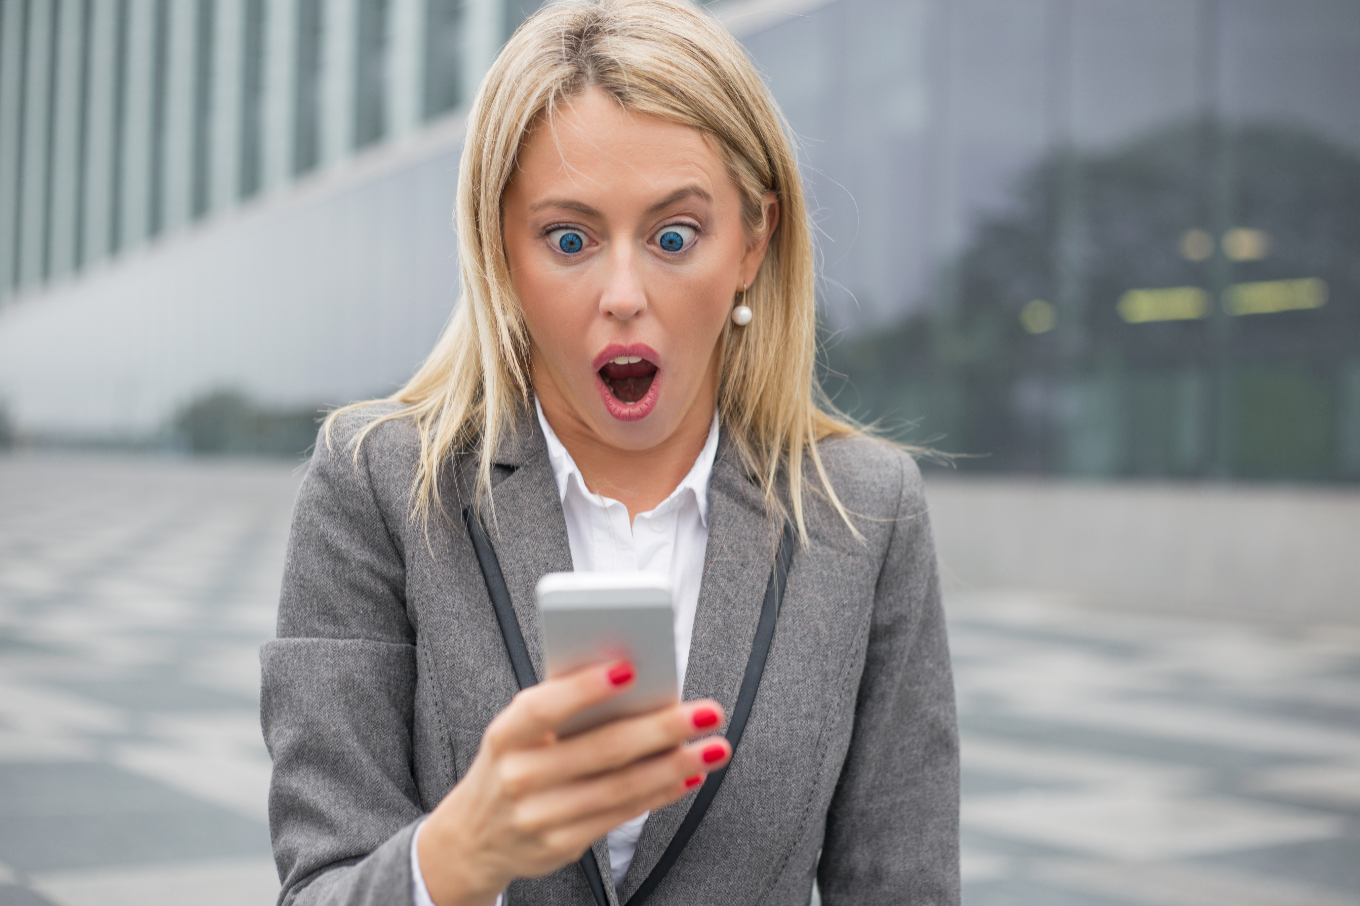 surprised woman shocked by what she sees on her phone